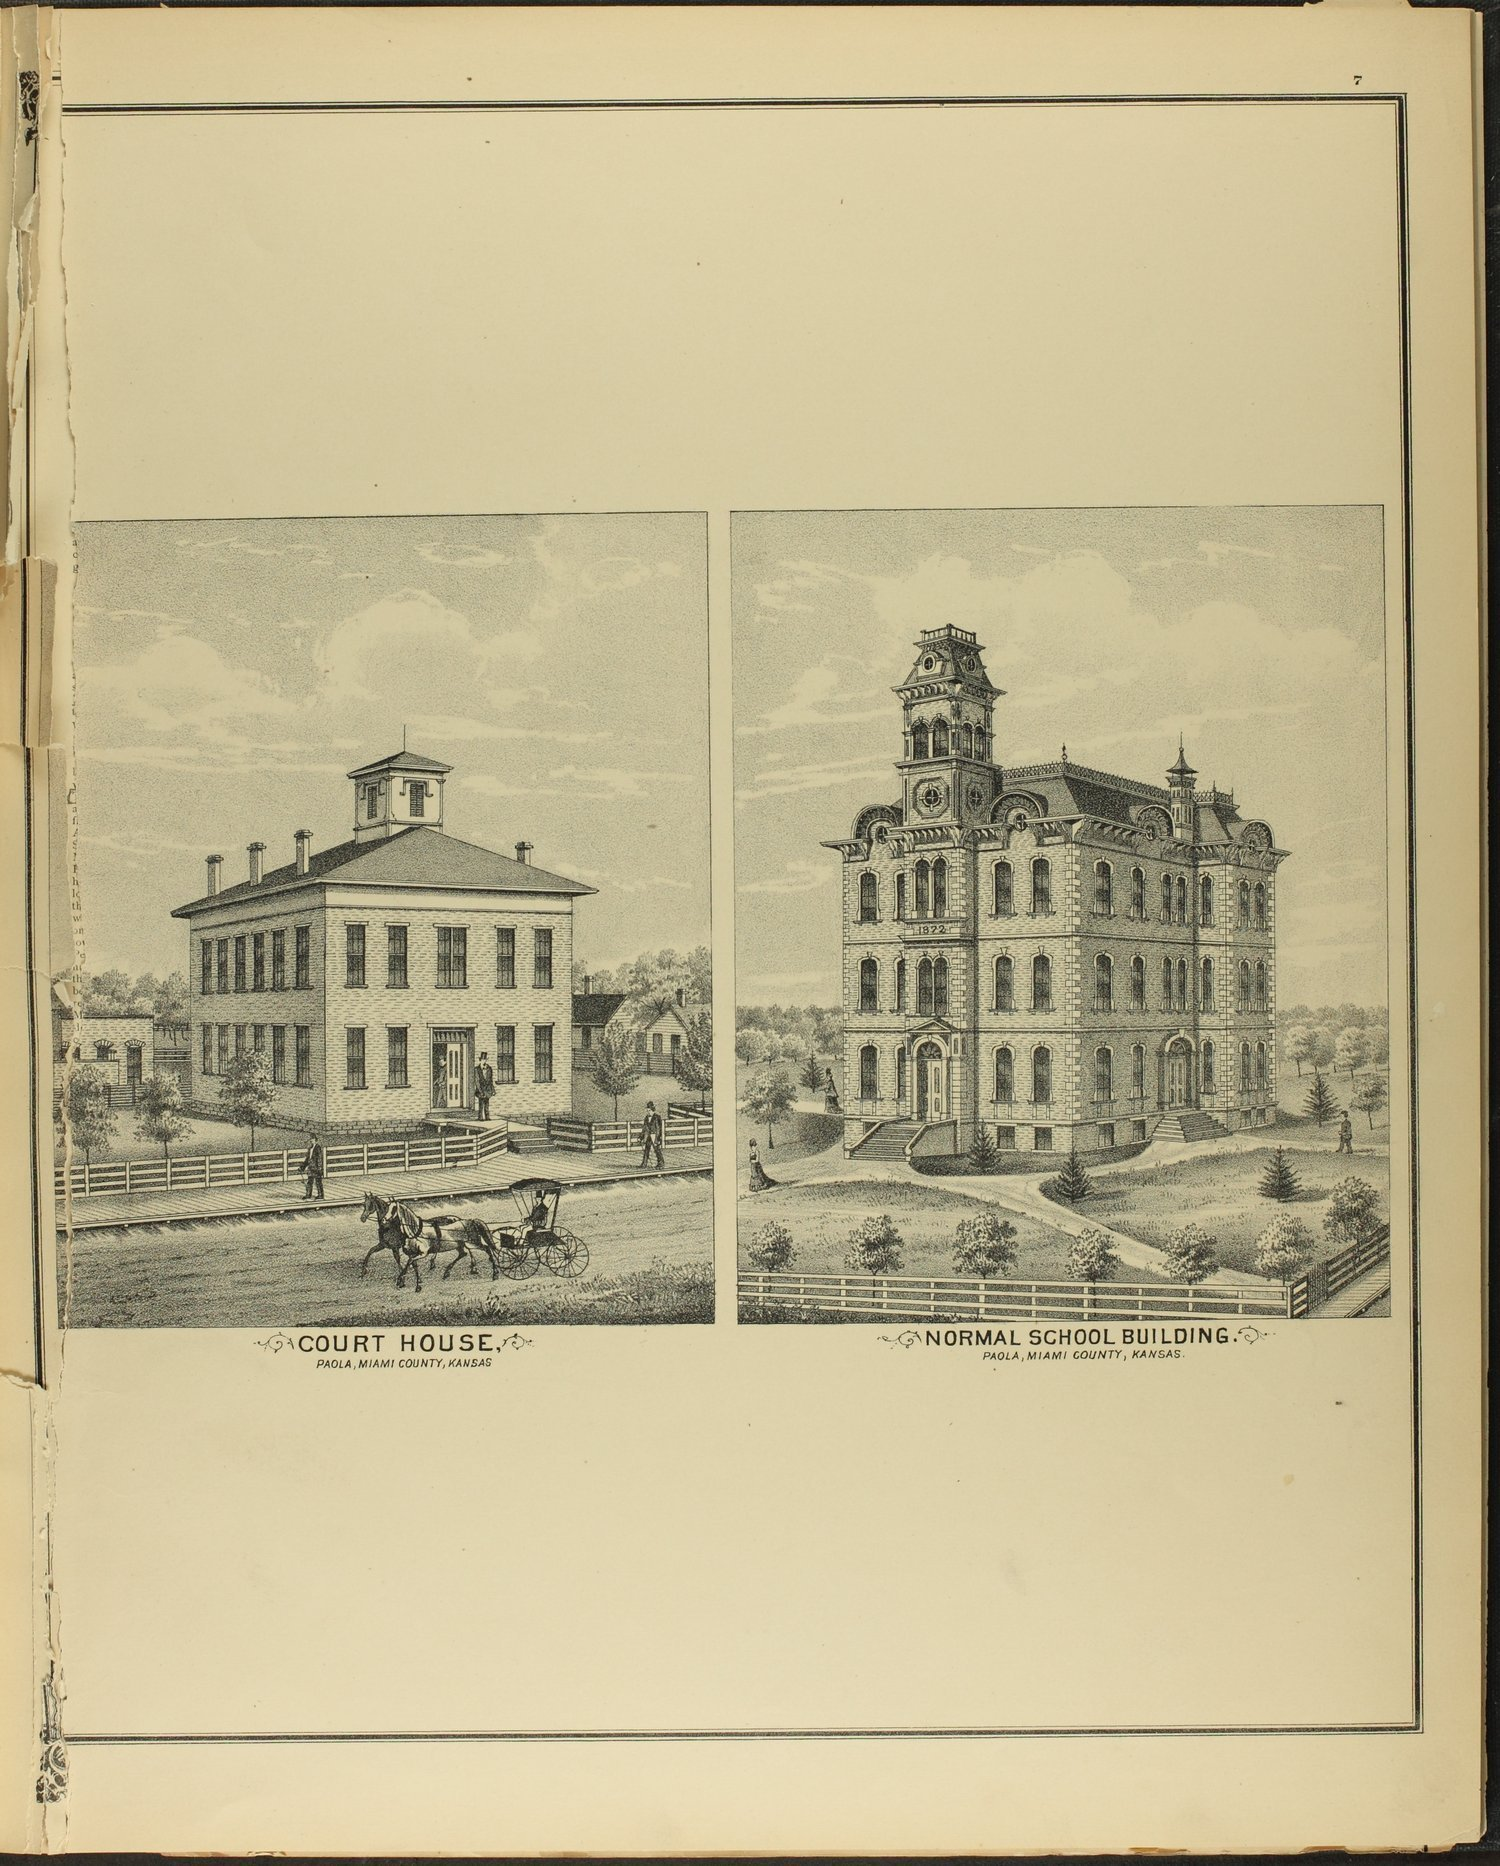 An illustrated historical atlas of Miami County, Kansas - 7